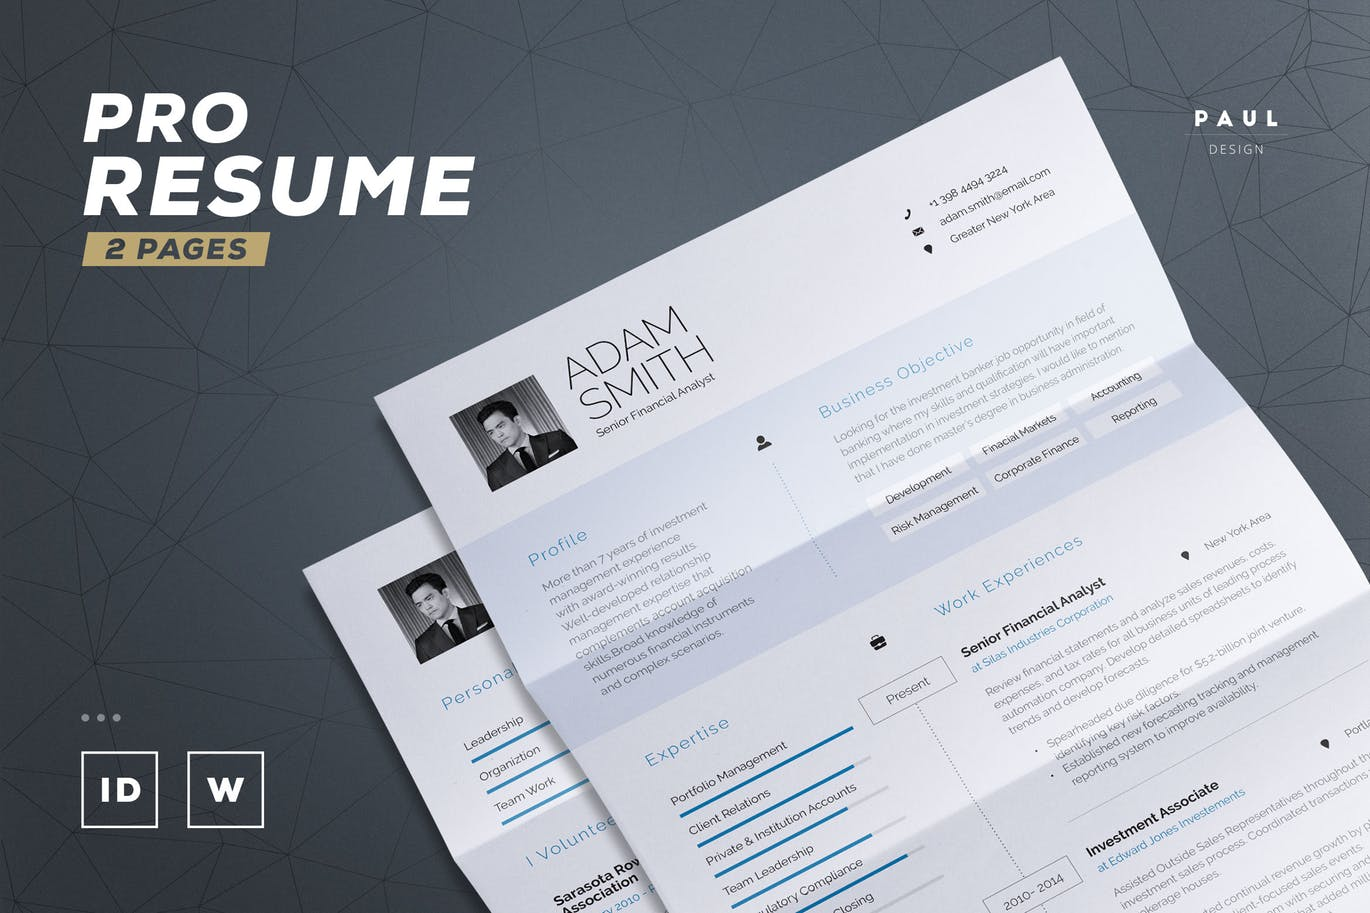 50  Best CV   Resume Templates of 2018   Design Shack This is a resume template with a professional design  It comes in both Word  and InDesign formats  The template has 2 pages and a cover letter